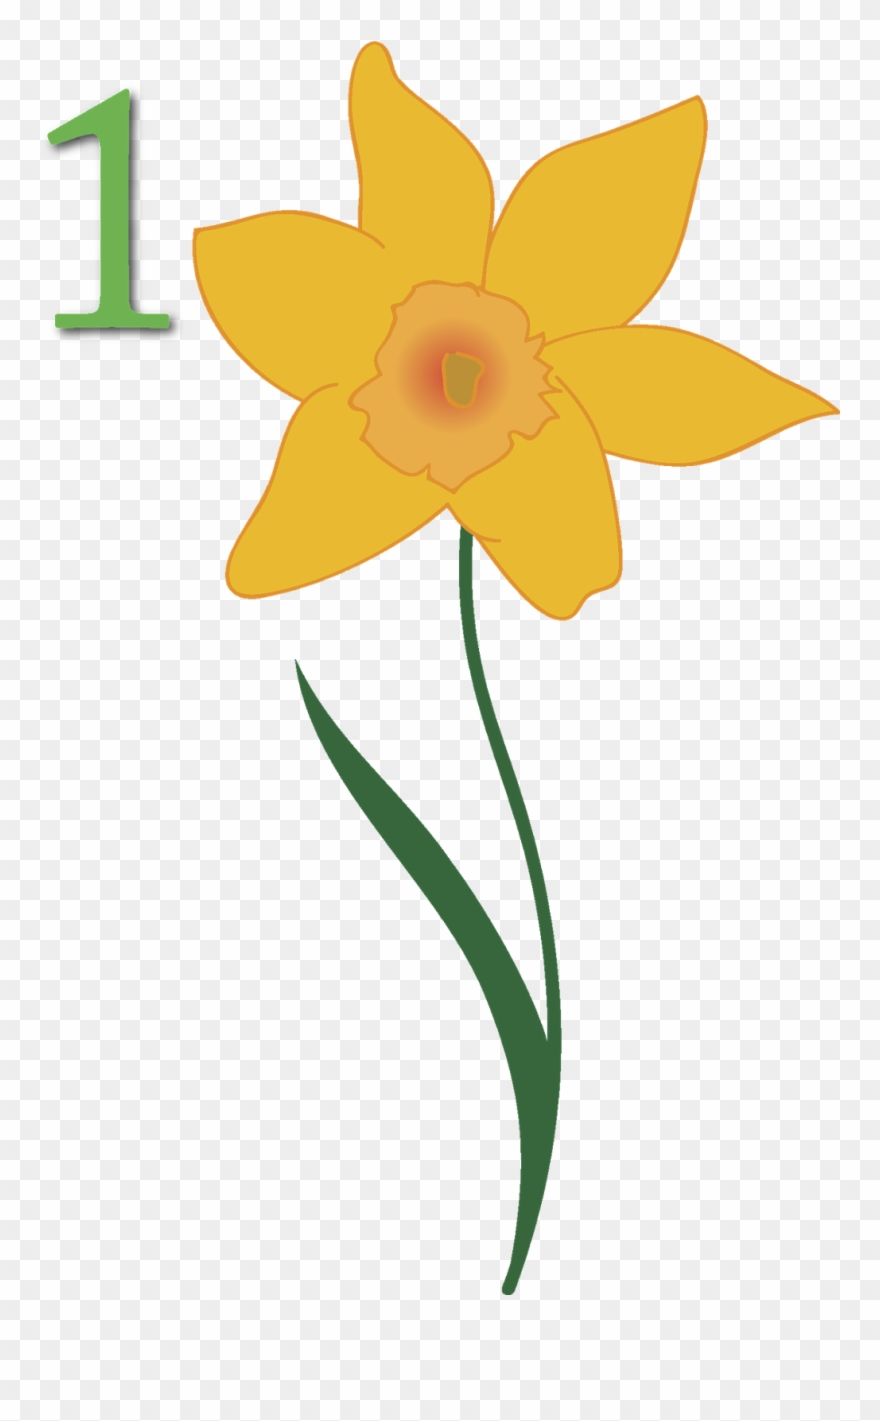 Flower yellow narcissus petal. April clipart wildflower